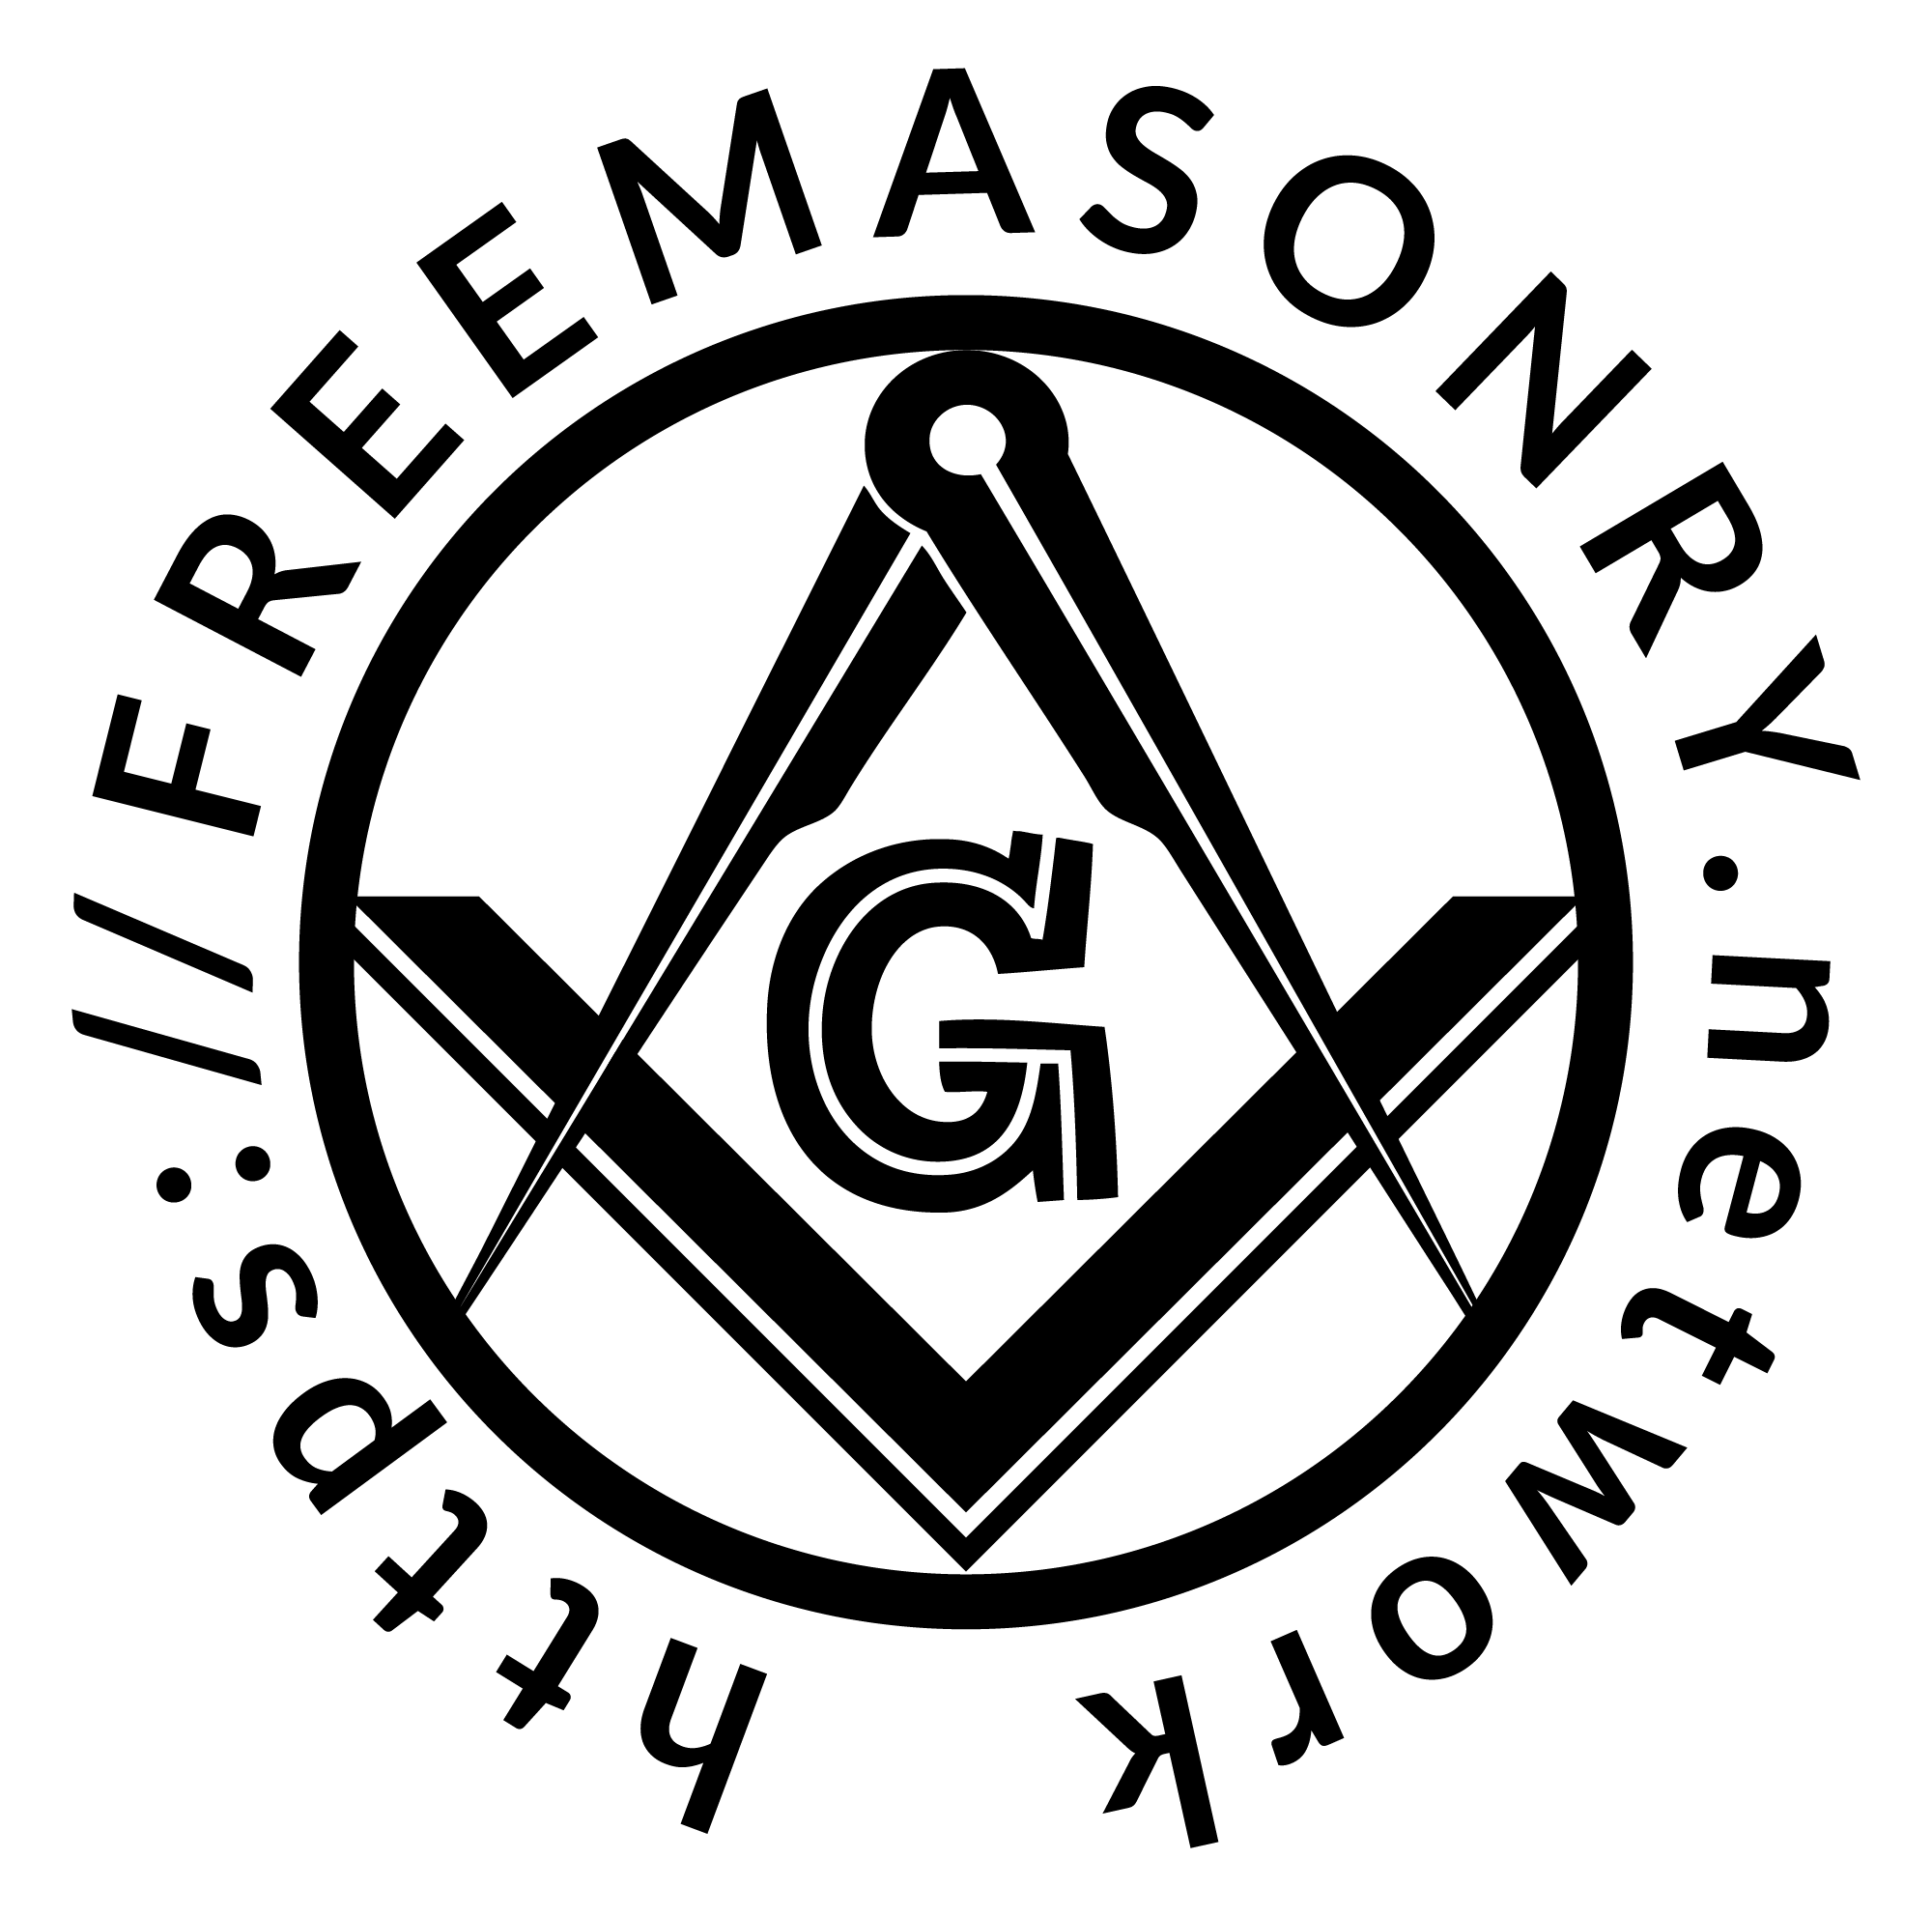 REGULAR MASONIC JURISDICTION